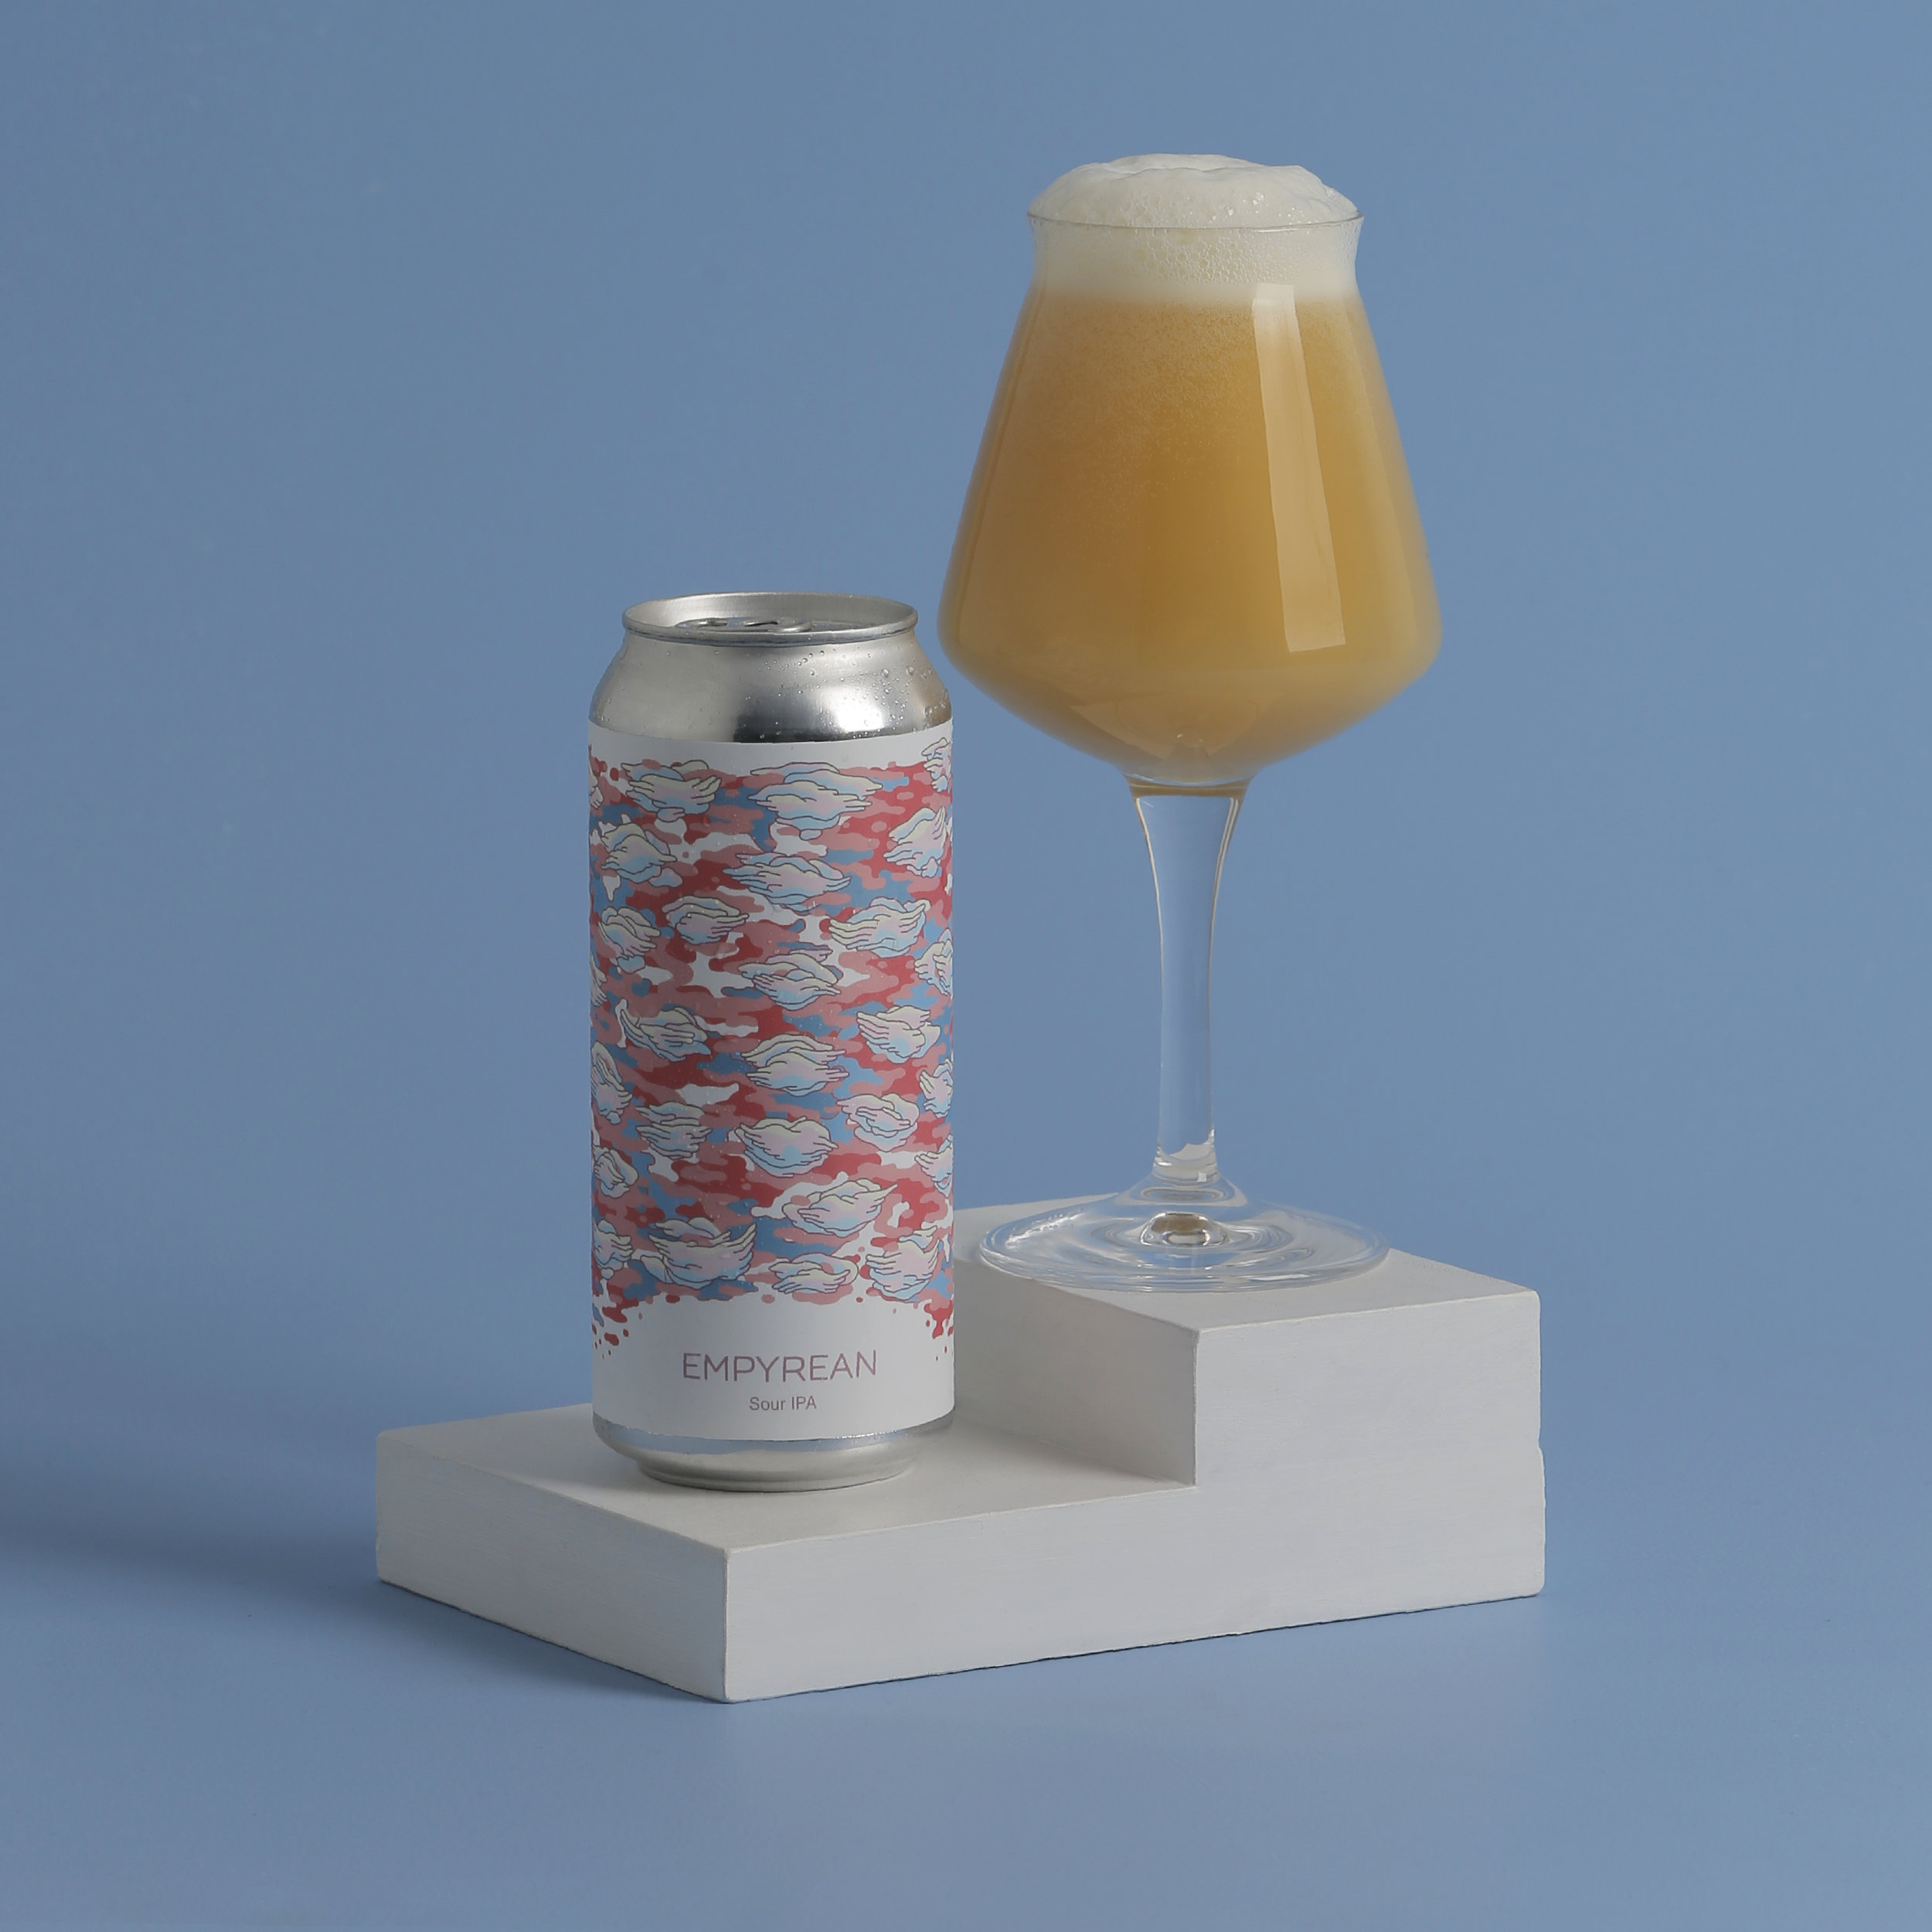 Photo of Empyrean in a can and Teku